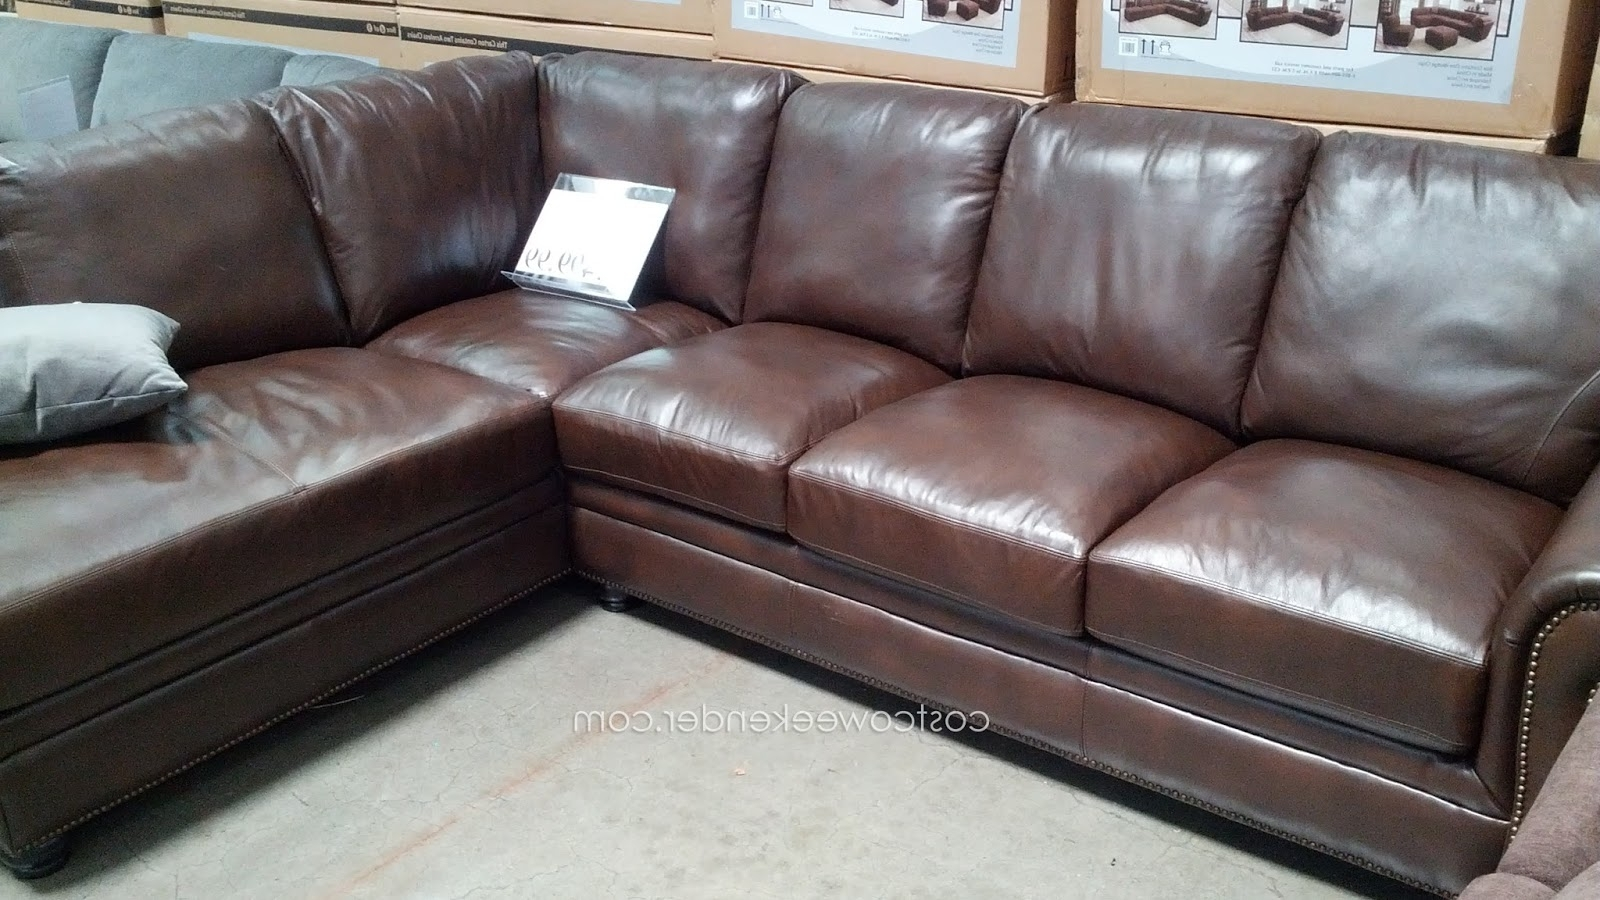 Recent Sectional Sofa Design: Costco Sectional Sofas Best Ever Leather In Sectional Sofas At Costco (View 13 of 20)